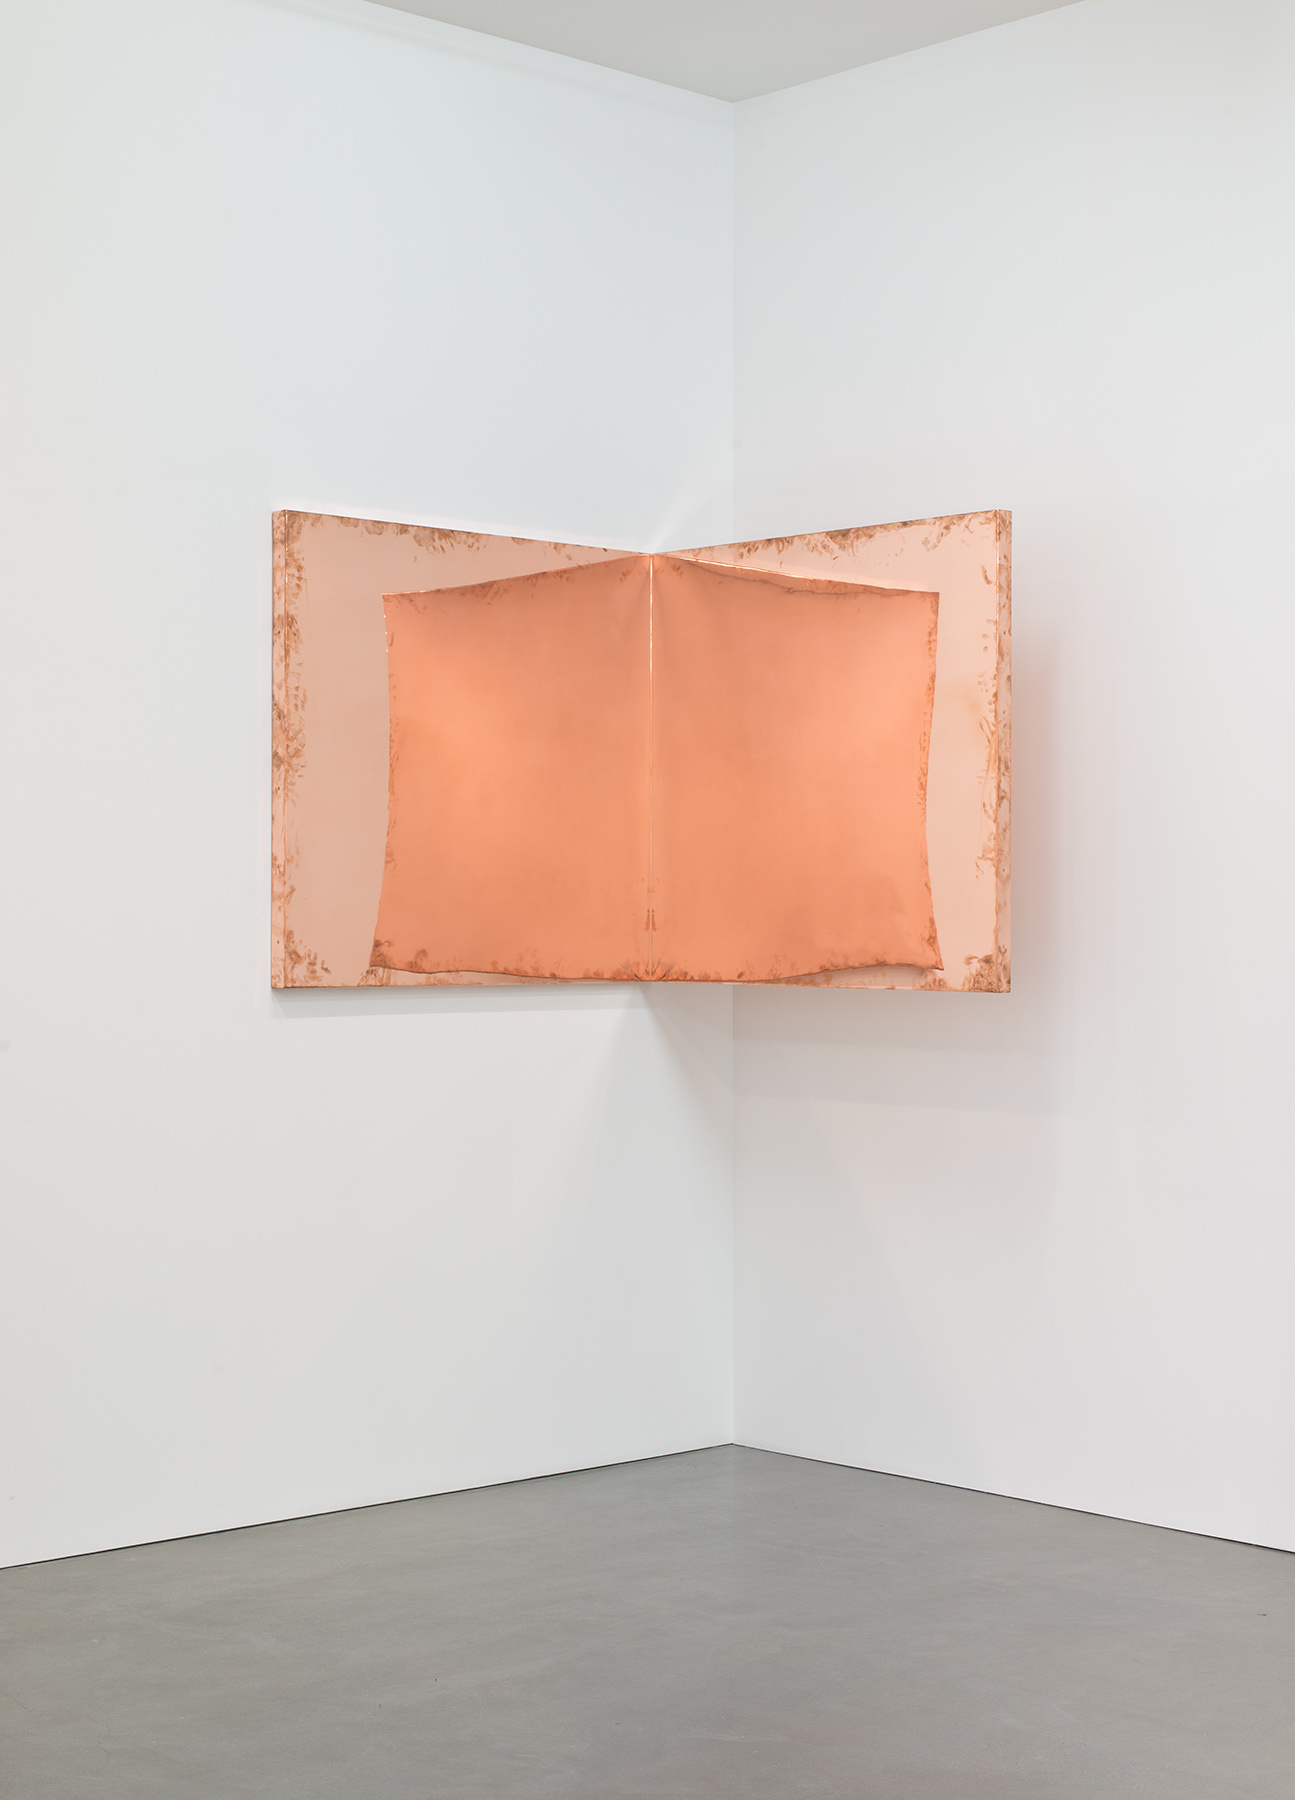 """Copper Surrogate (60"""" x 120"""" 48 ounce C11000 Copper Alloy, 90º Bend, 60""""Bisection: February 20/April 5, 2014, Los Angeles, California)   2014–  Polished copper  60 x 60 x 60 inches   Surrogates (Full Sheet, Art Handling), 2011–    Selected Bodies of Work, 2014"""